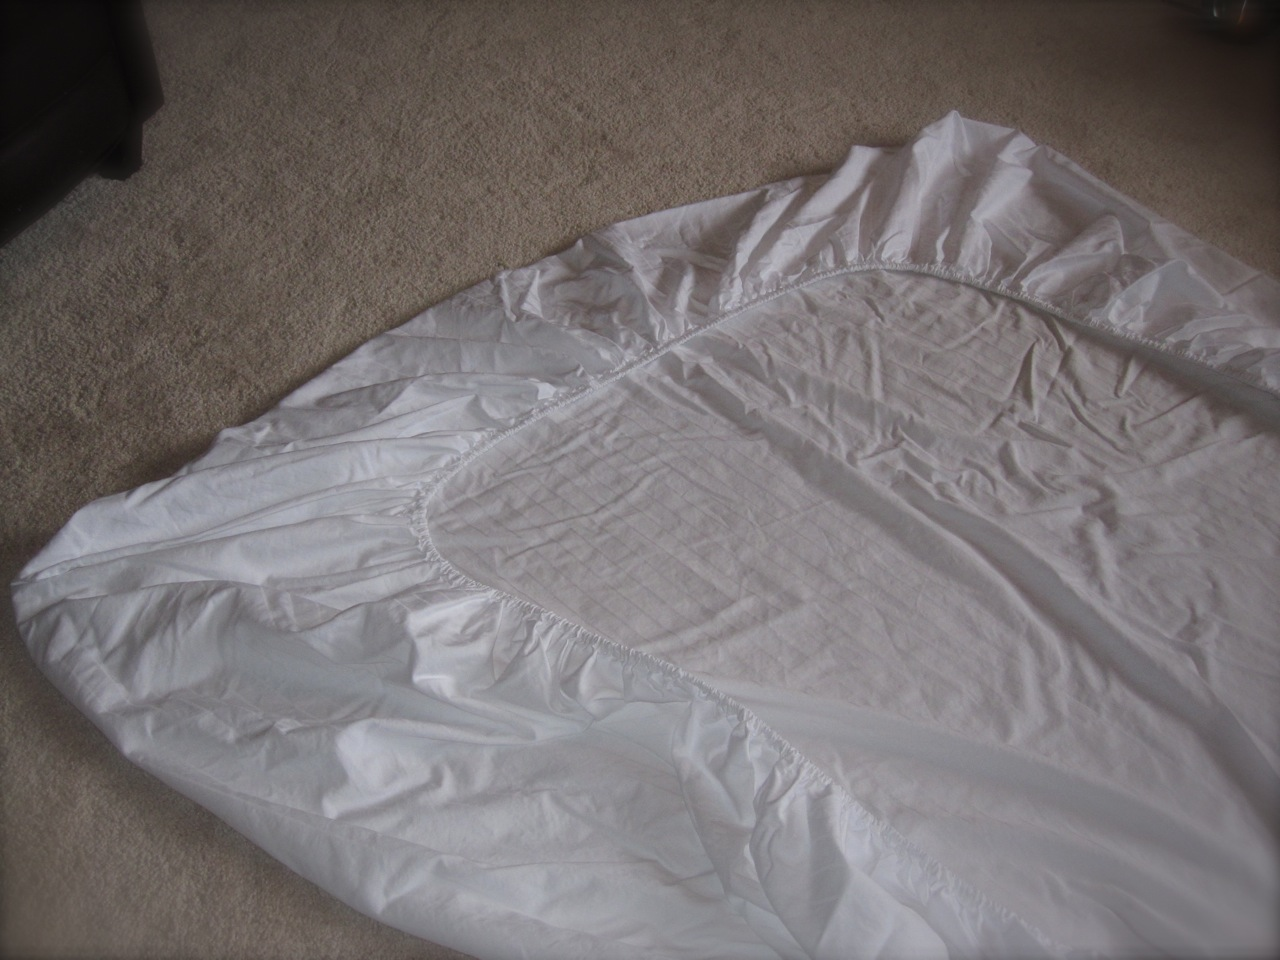 How to fold fitted sheets - Ask Anna